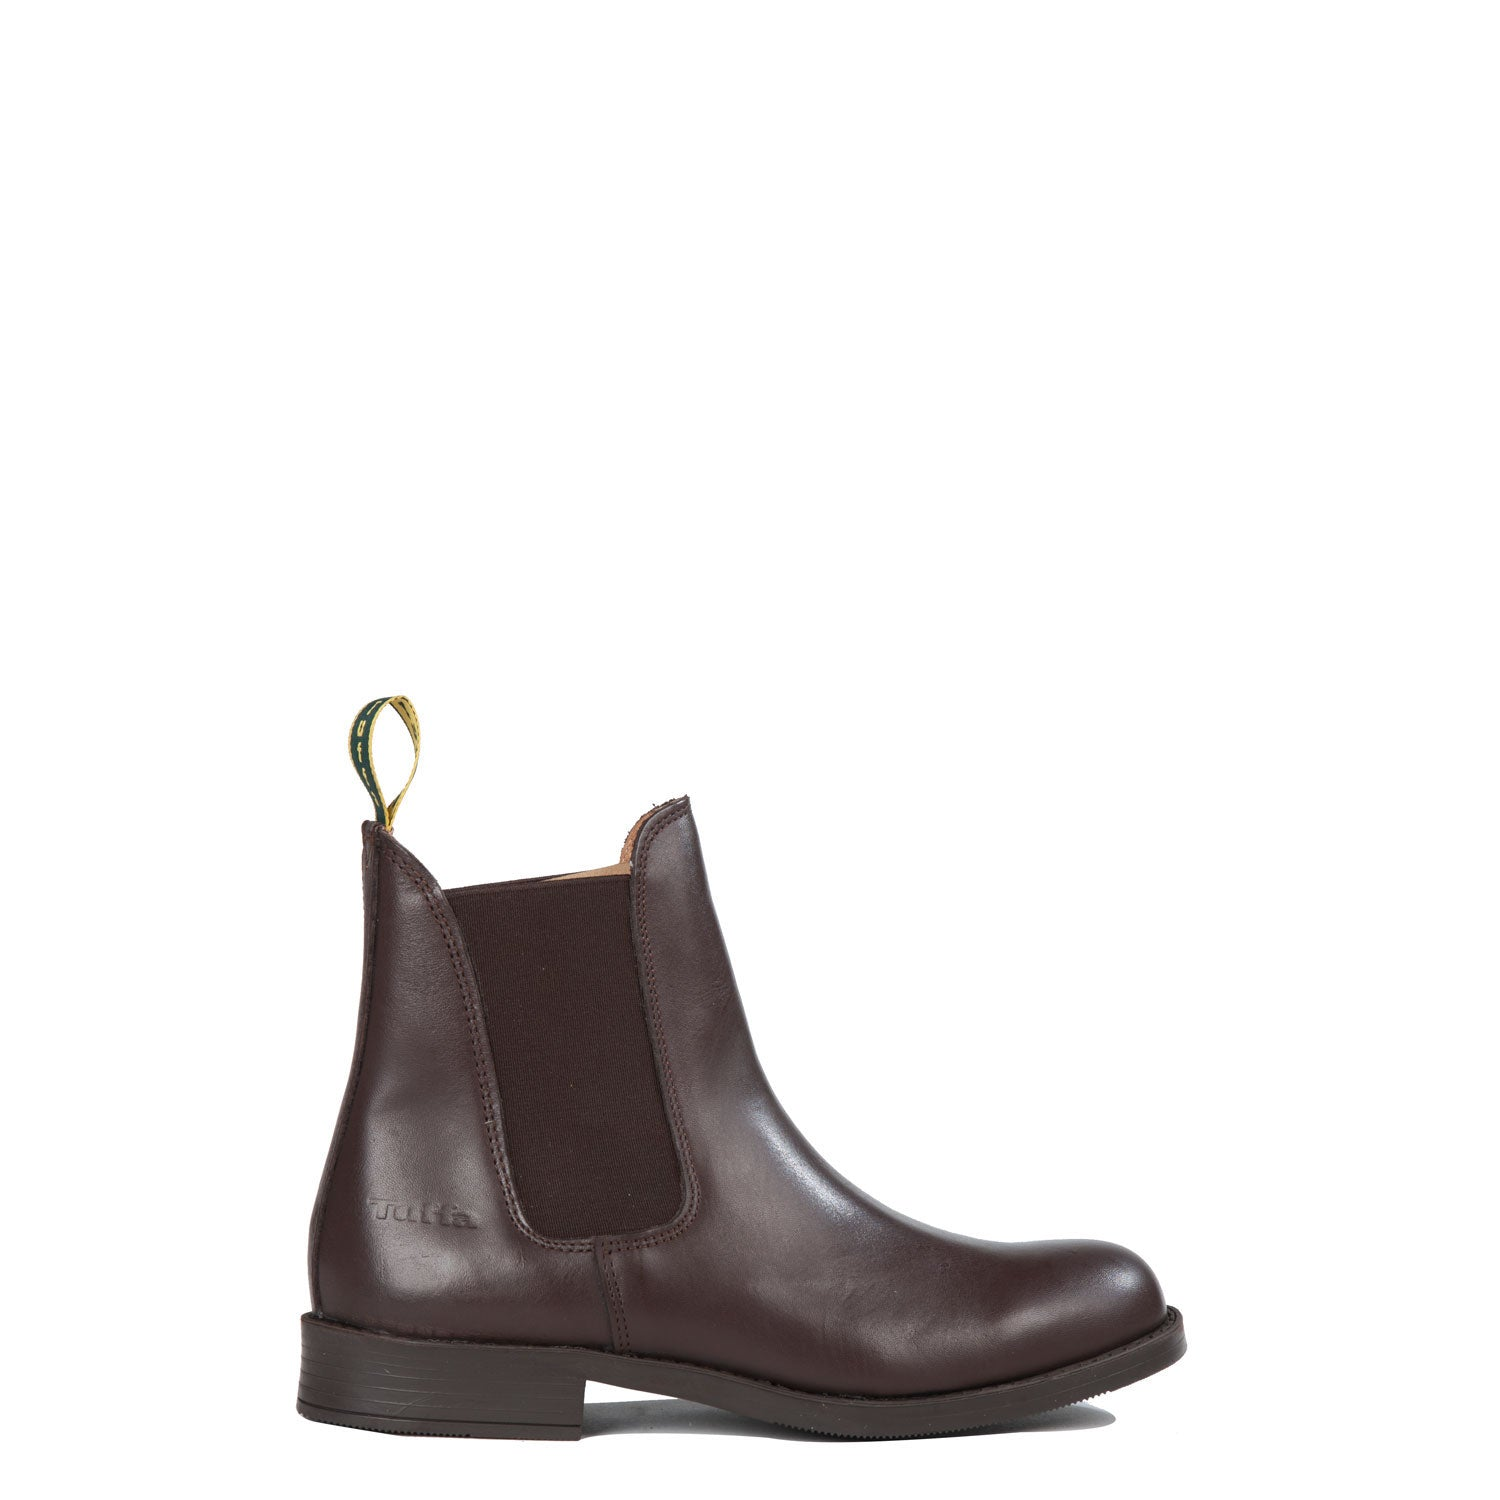 Tuffa Boots/Polo Jodhpur Black/Brown